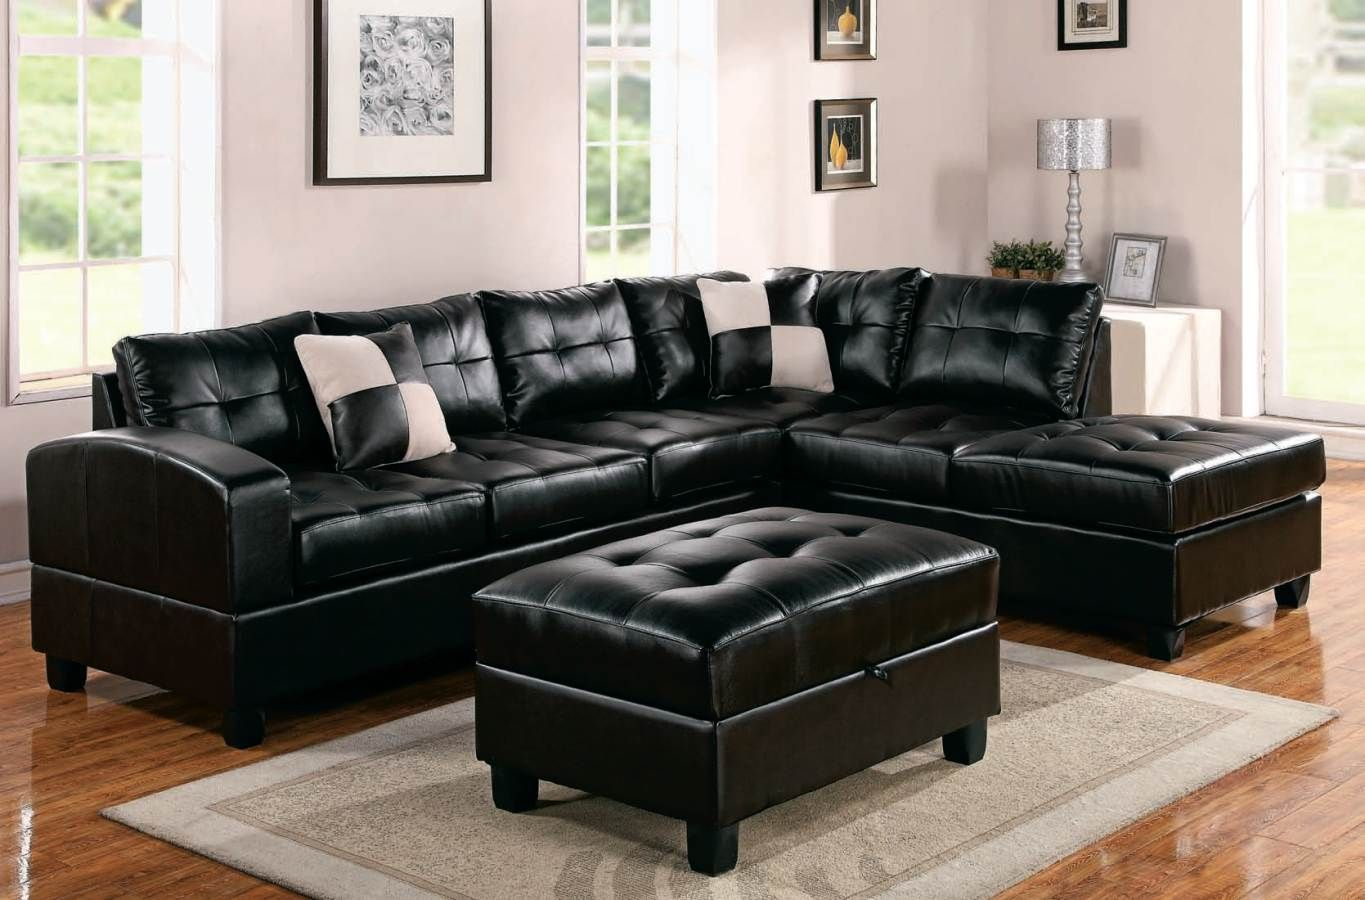 Modern Black Leather Sectional Sofa Black Sofas Leather